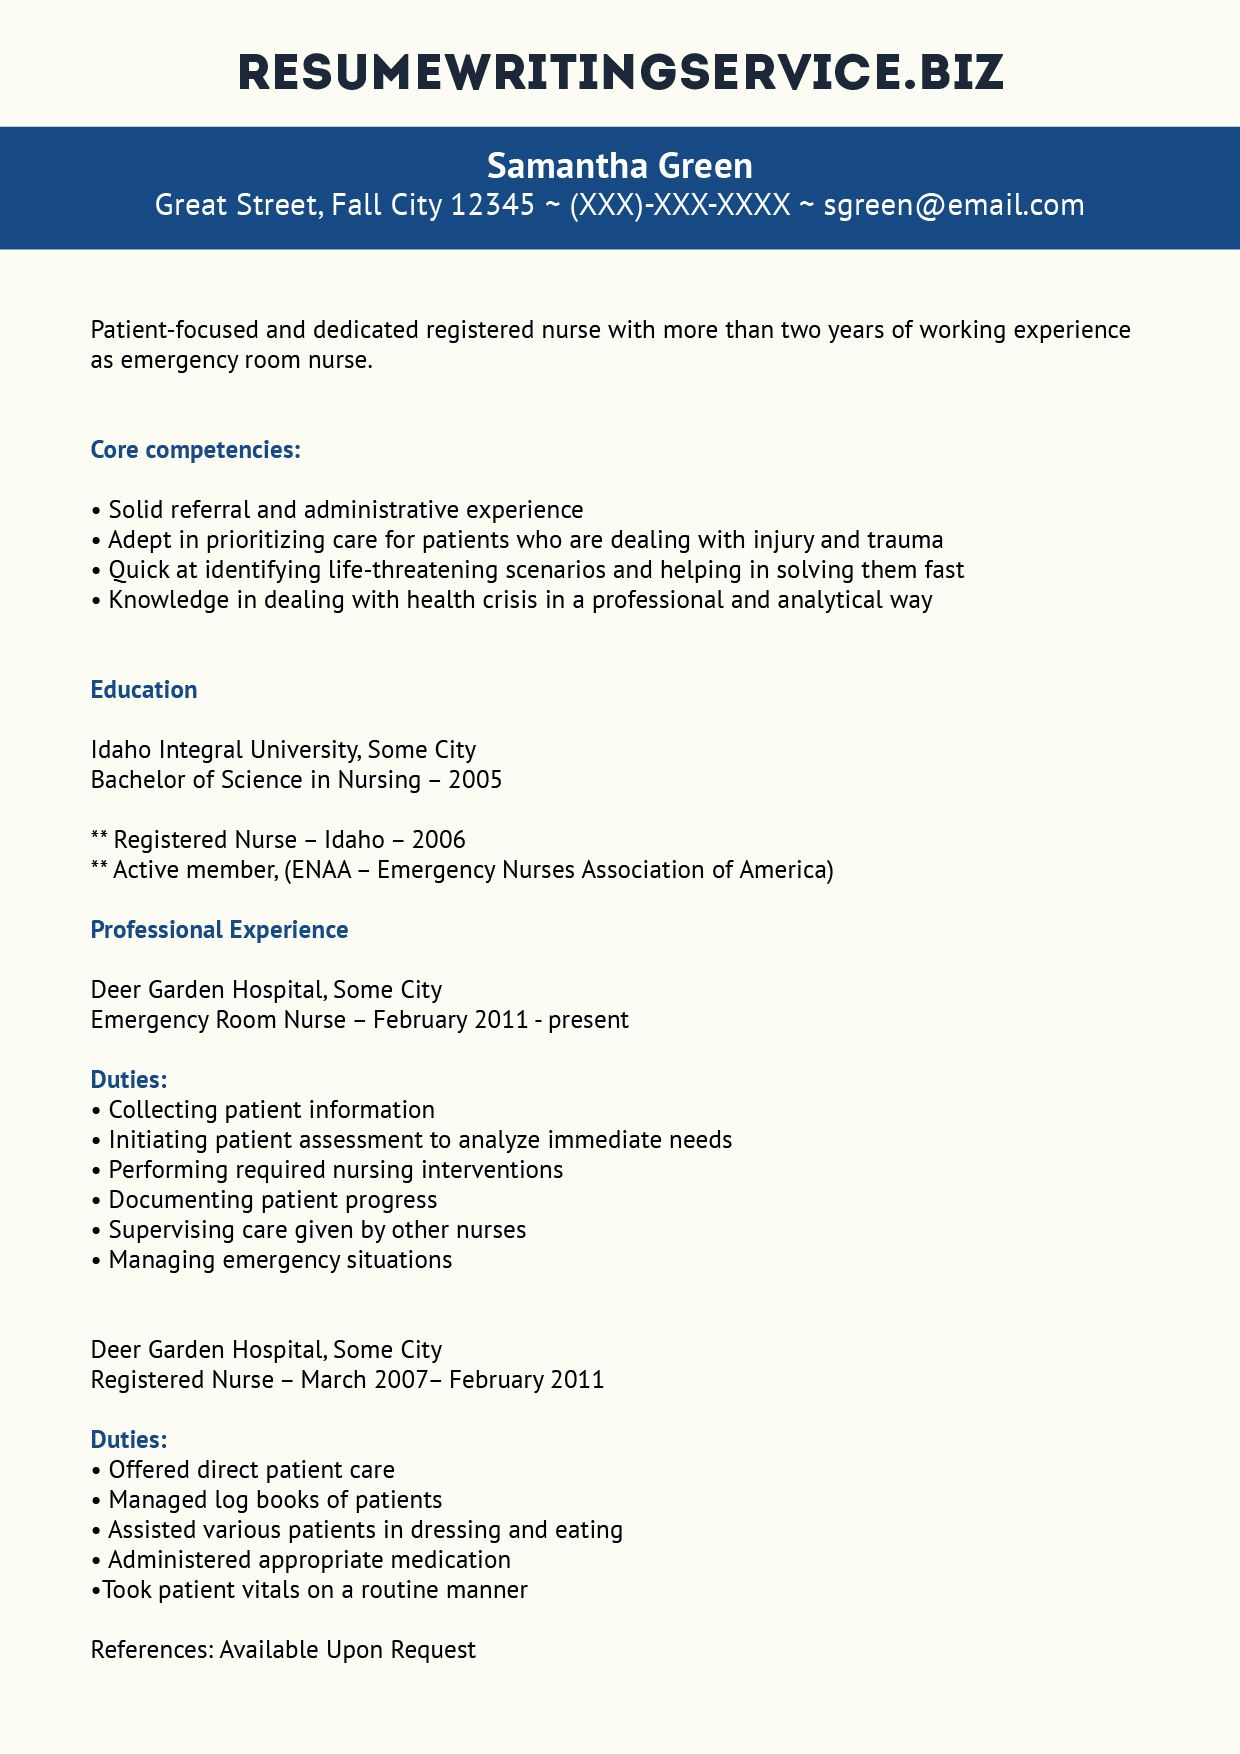 nurse practitioner resume writing service best services review for practitioners Resume Resume Writing For Nurse Practitioners